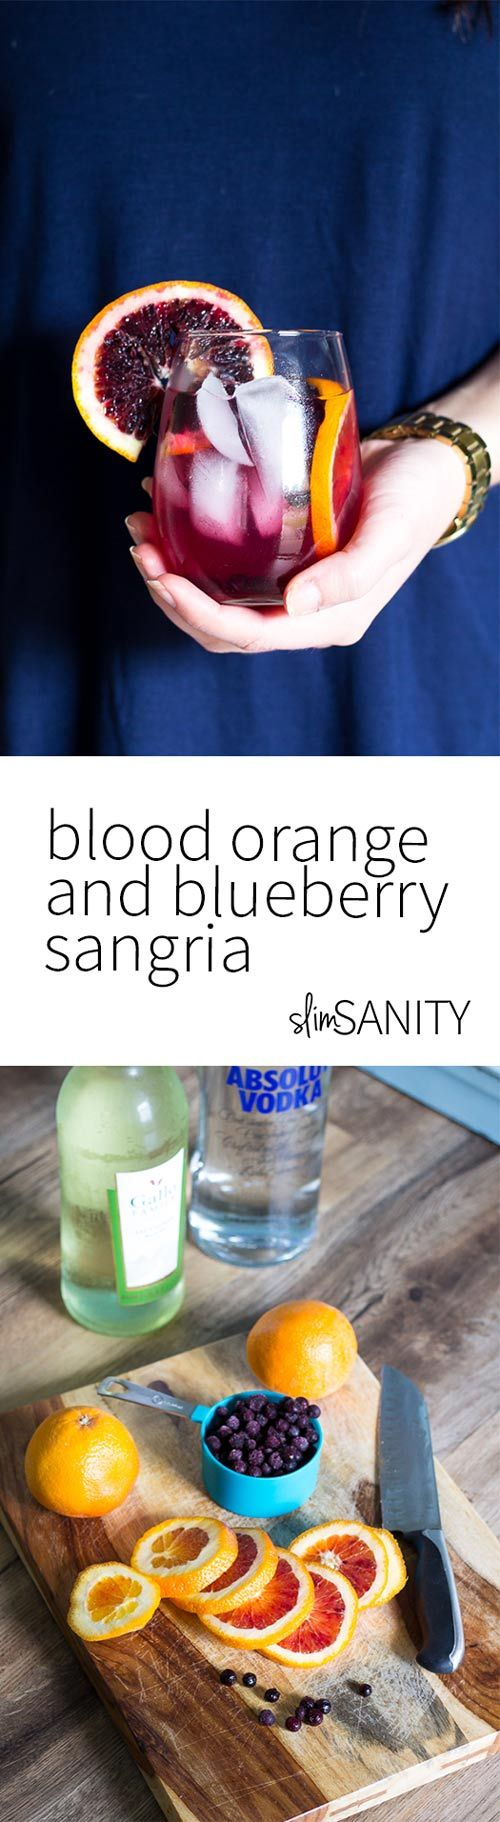 Blood orange and blueberry sangria is a simple party drink made with fruit, sauvignon blanc, vodka and a little bit of club soda. | slimsanity.com